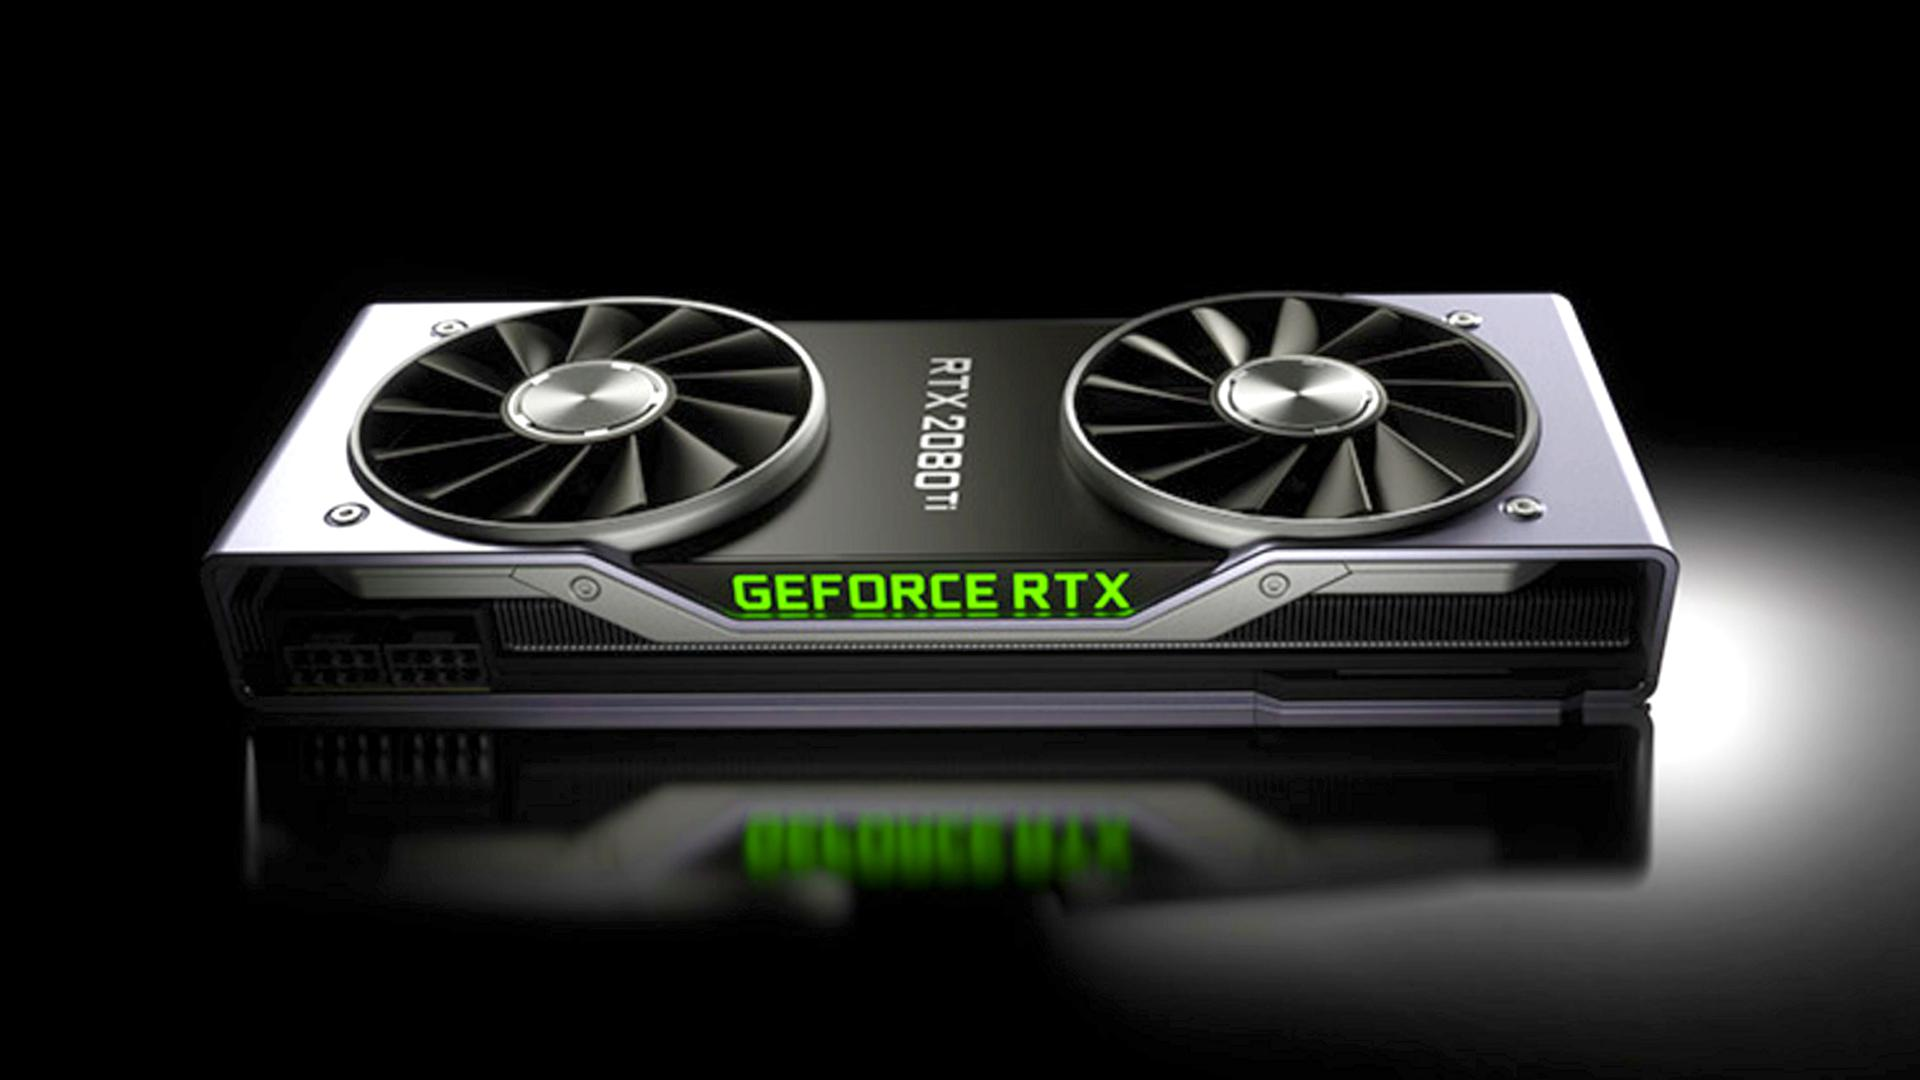 Nvidia Geforce Rtx Wallpapers Wallpaper Cave